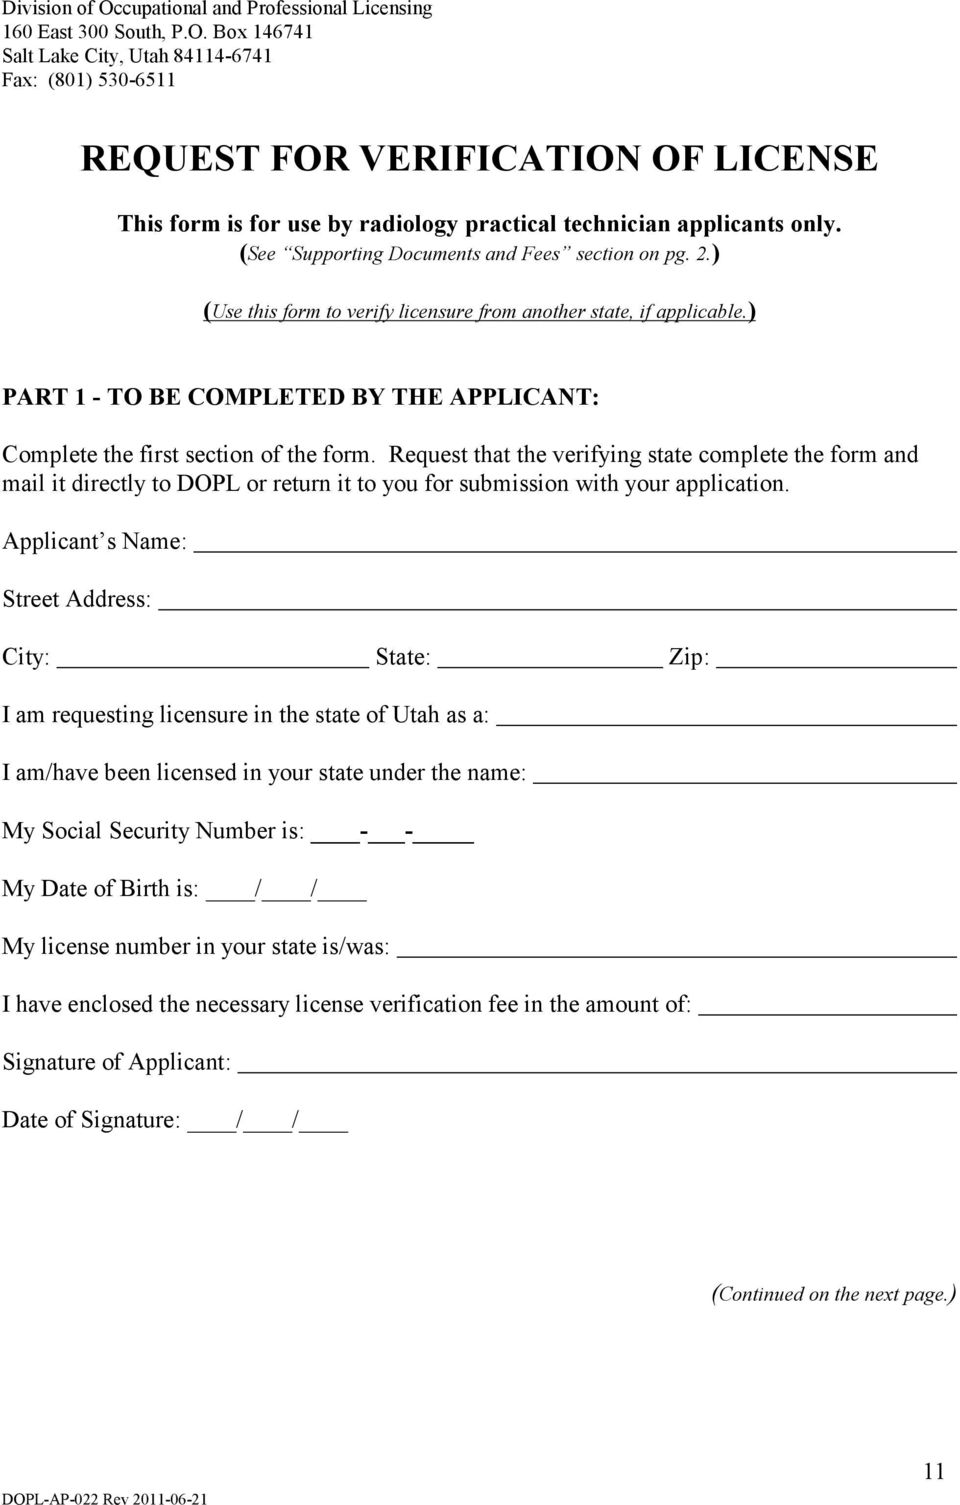 ) PART 1 - TO BE COMPLETED BY THE APPLICANT: Complete the first section of the form.